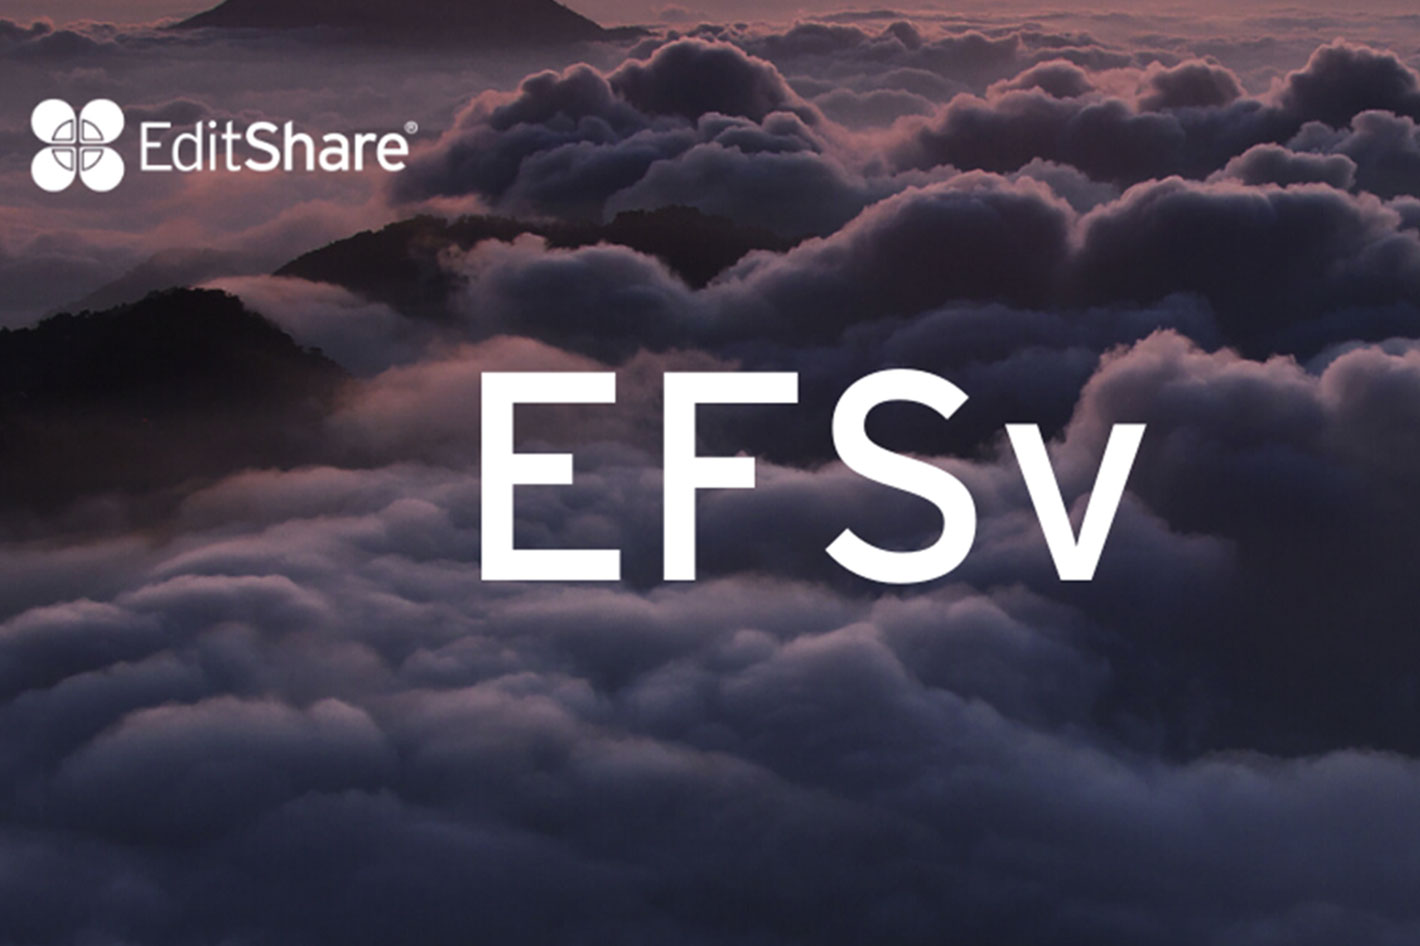 EditShare: new EFSv platform for collaborative editing in the cloud